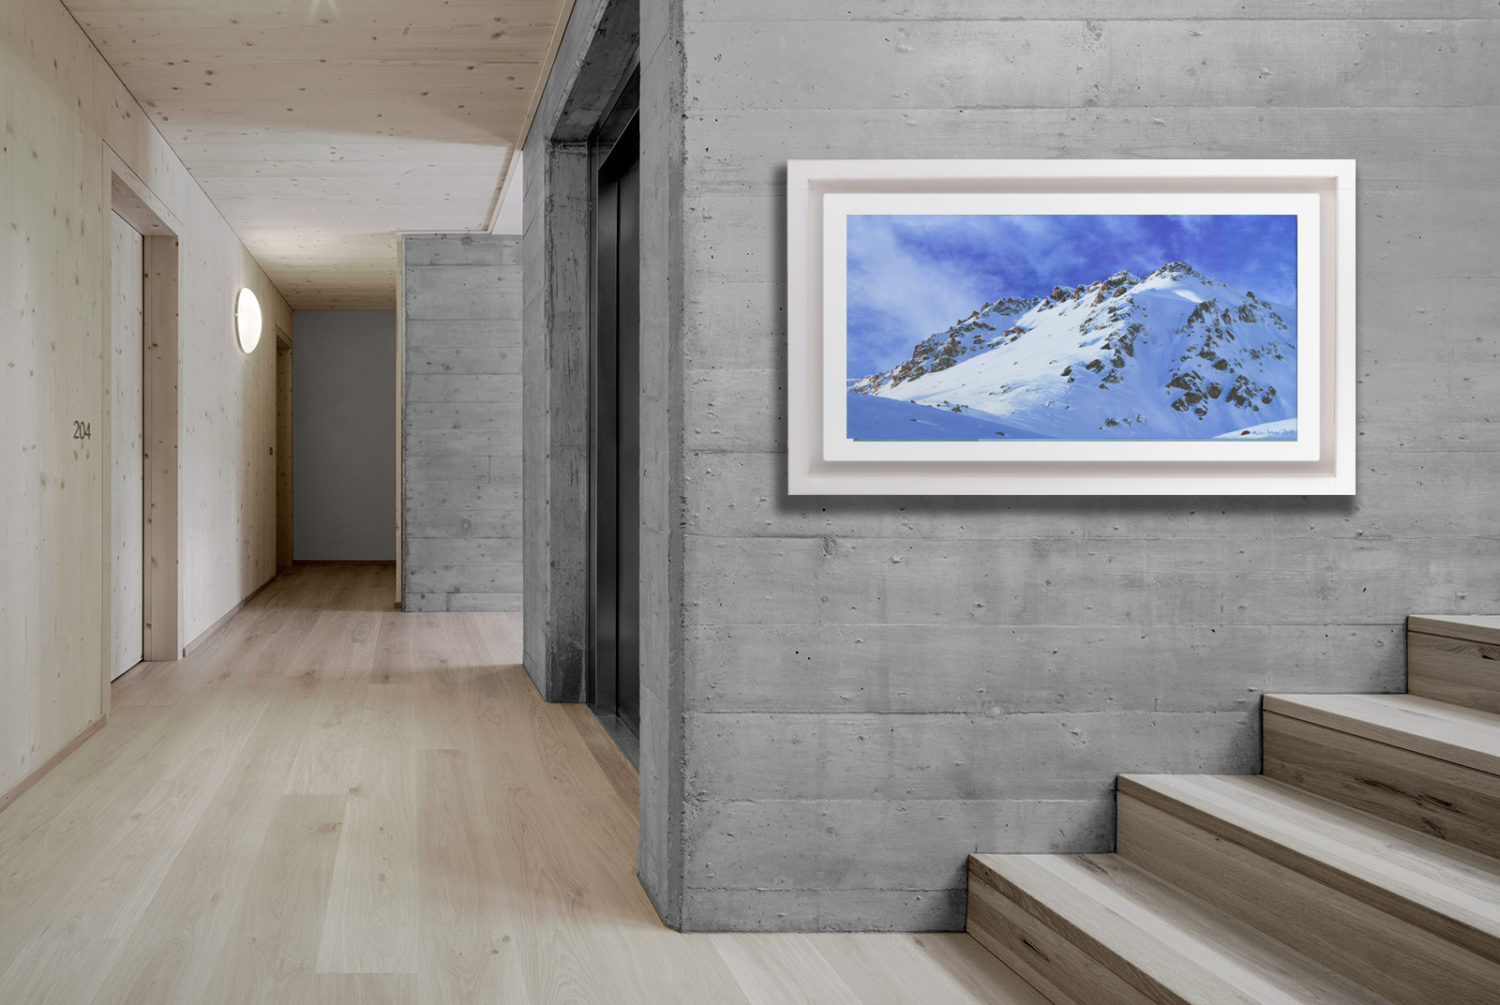 Switzerland St.Moritz Diavolezza Attew Painting Landscape artist art ski snowboard mountain winter Snow Alpine Alps Montagne Alpes